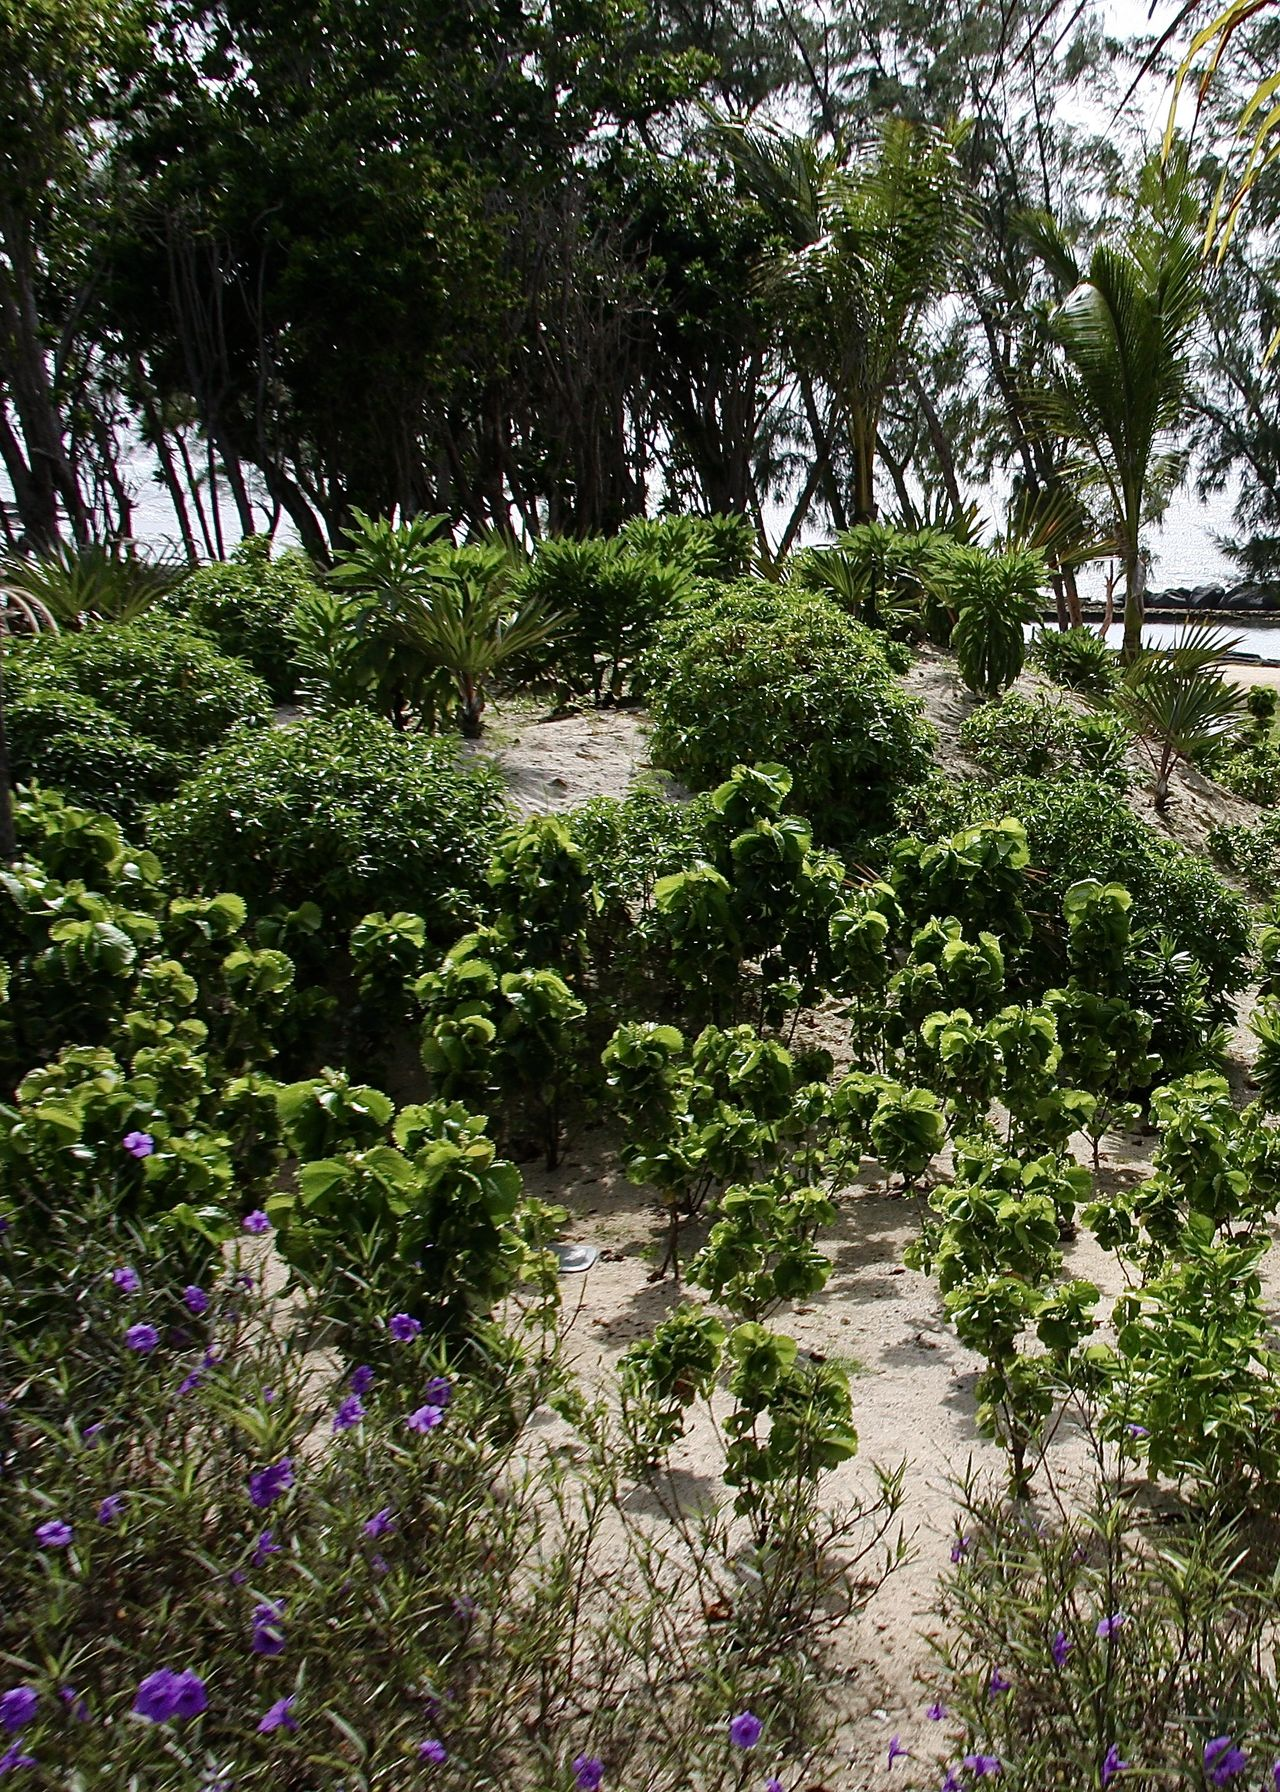 garden in front of beach, Mauritius Beach Beauty In Nature Flora Flowers Freshness Garden Gardening Green Green Color Greenery Growth Lush - Description Mauritius Nature Outdoors Pink Plant Sand Sea Tranquility Travel Tree Trees Tropical Water